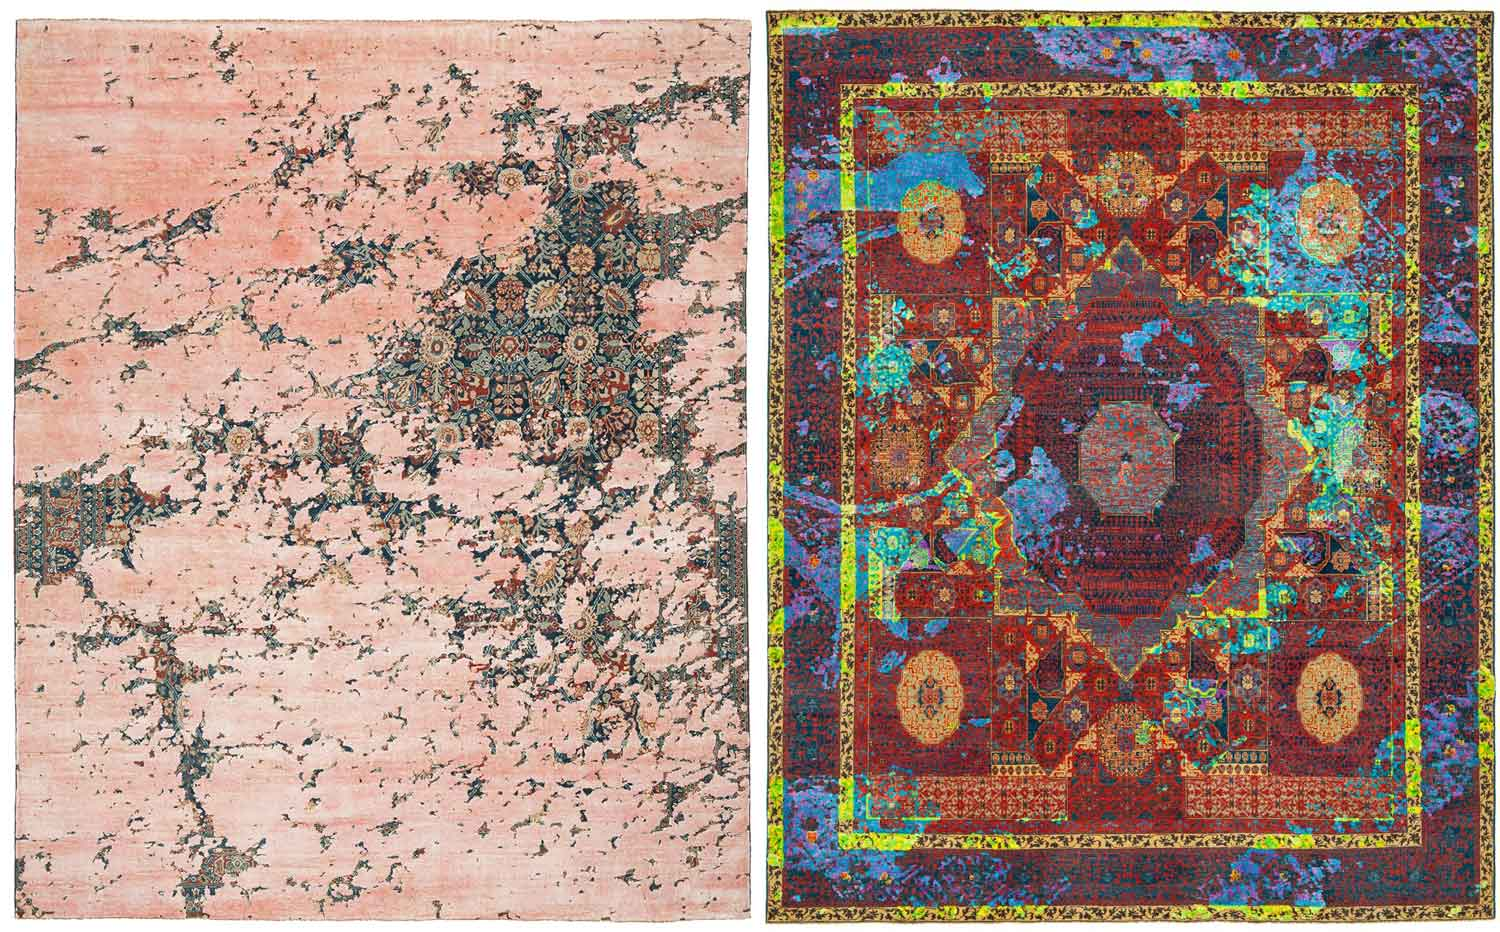 Rugs by Jan Kath at Maison & Objet 2015 | Yellowtrace